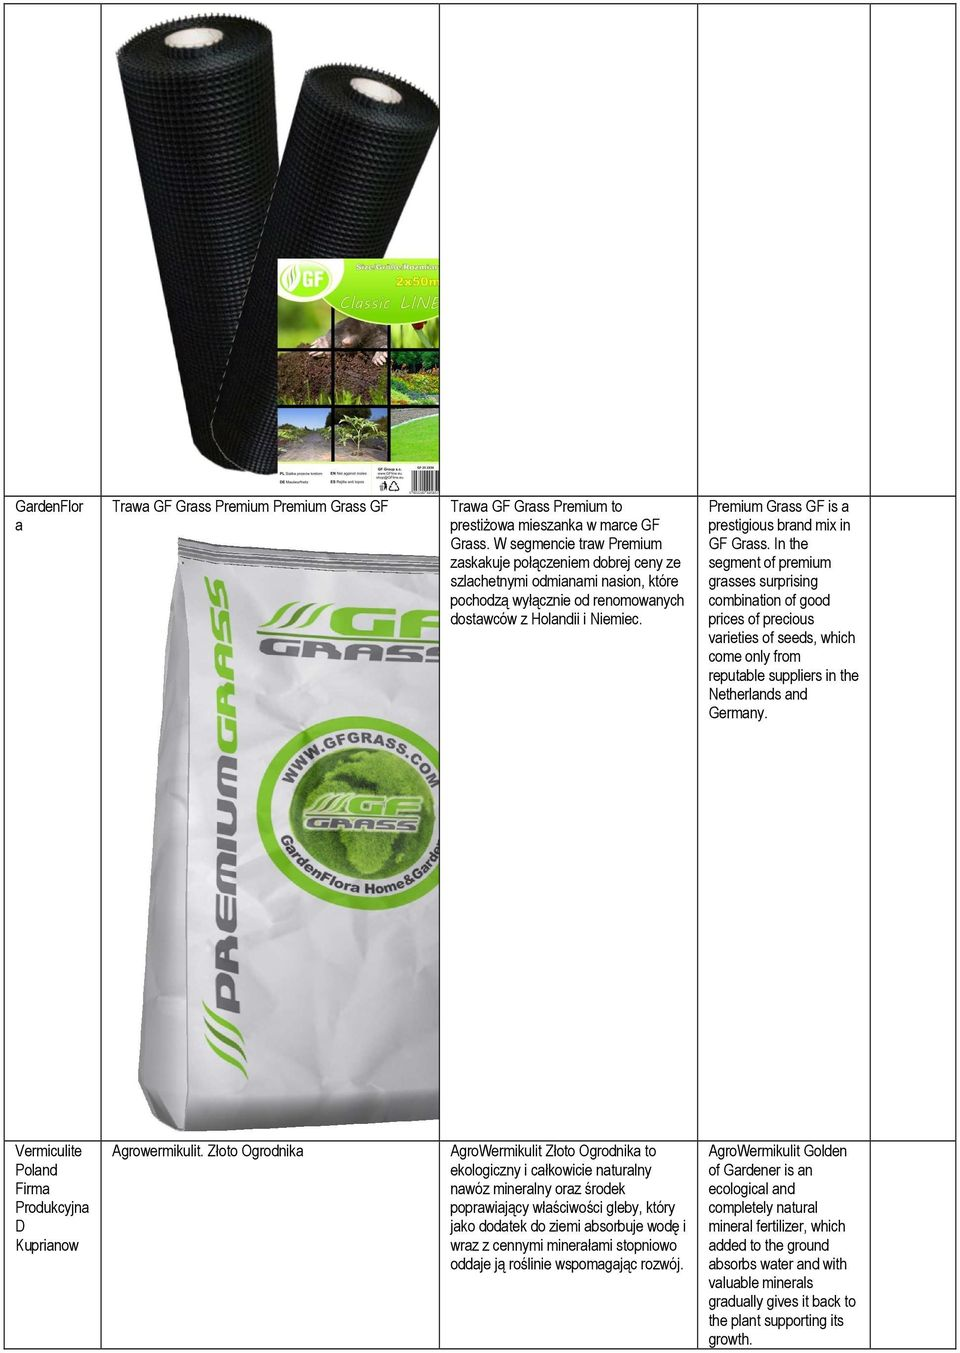 Premium Grass GF is a prestigious brand mix in GF Grass.